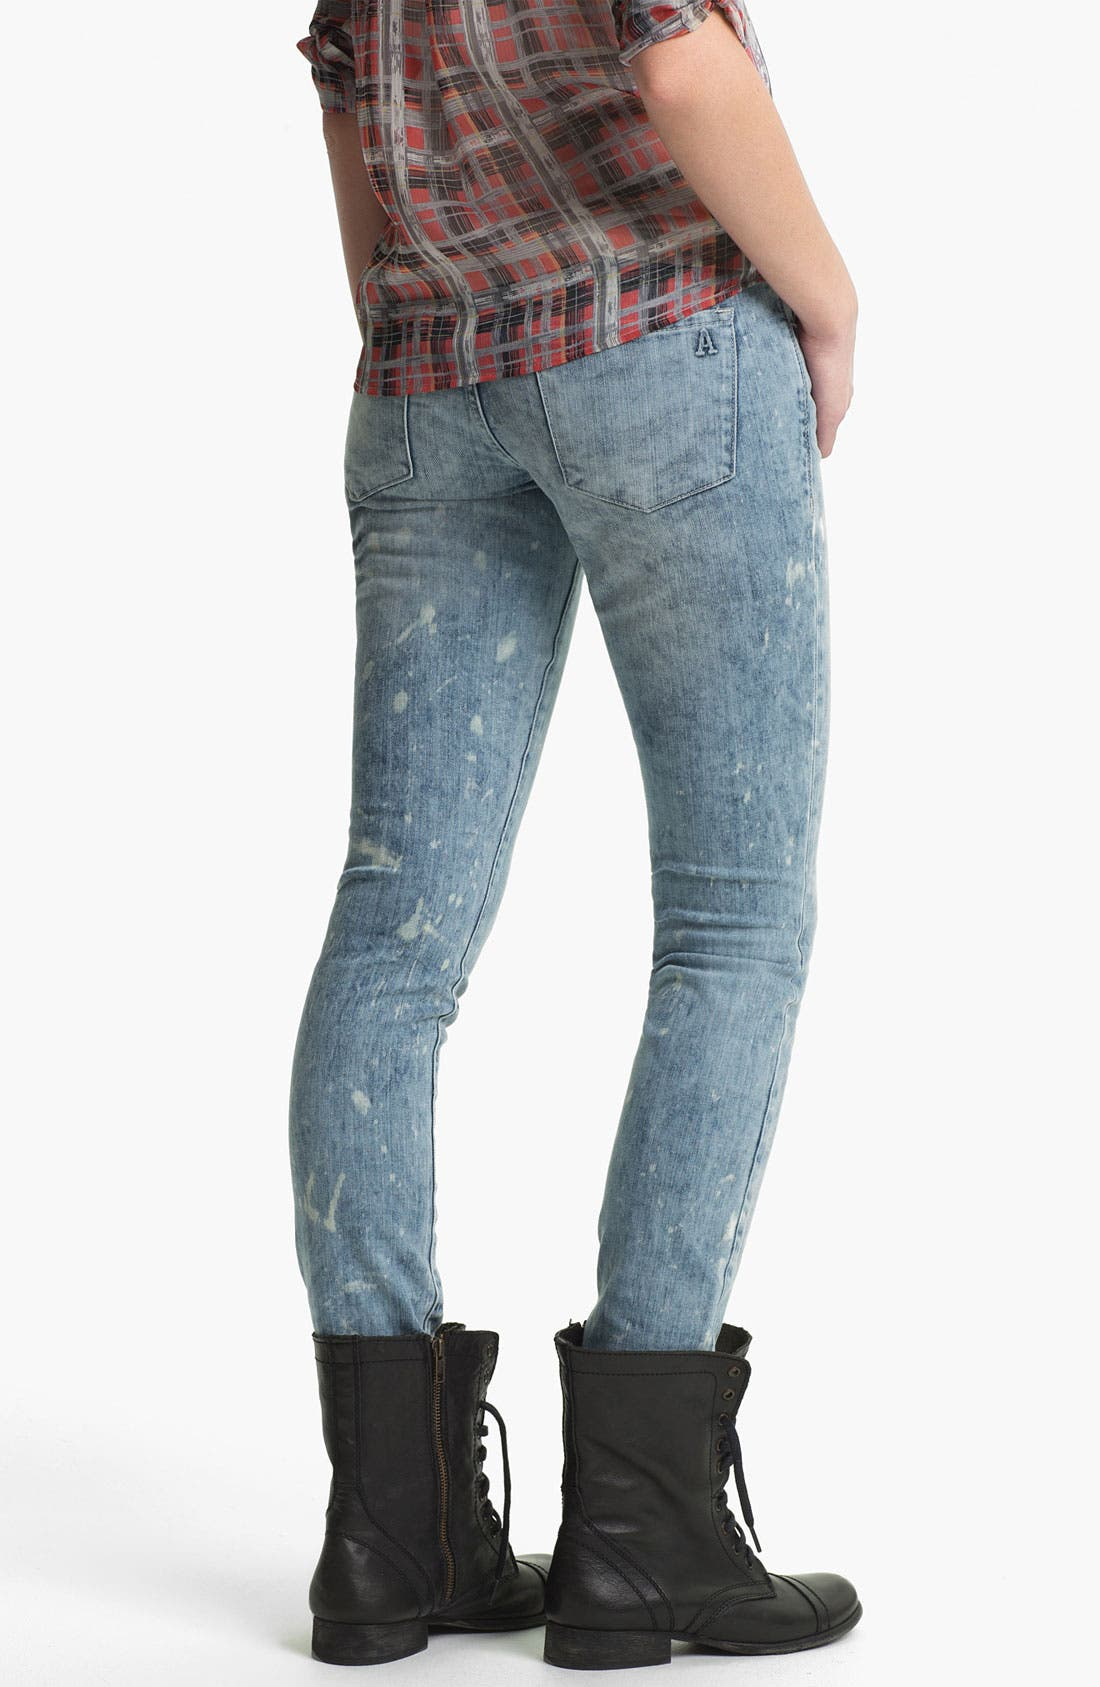 Alternate Image 1 Selected - Articles of Society 'Ashley' Acid Wash Skinny Jeans (Coast) (Juniors)